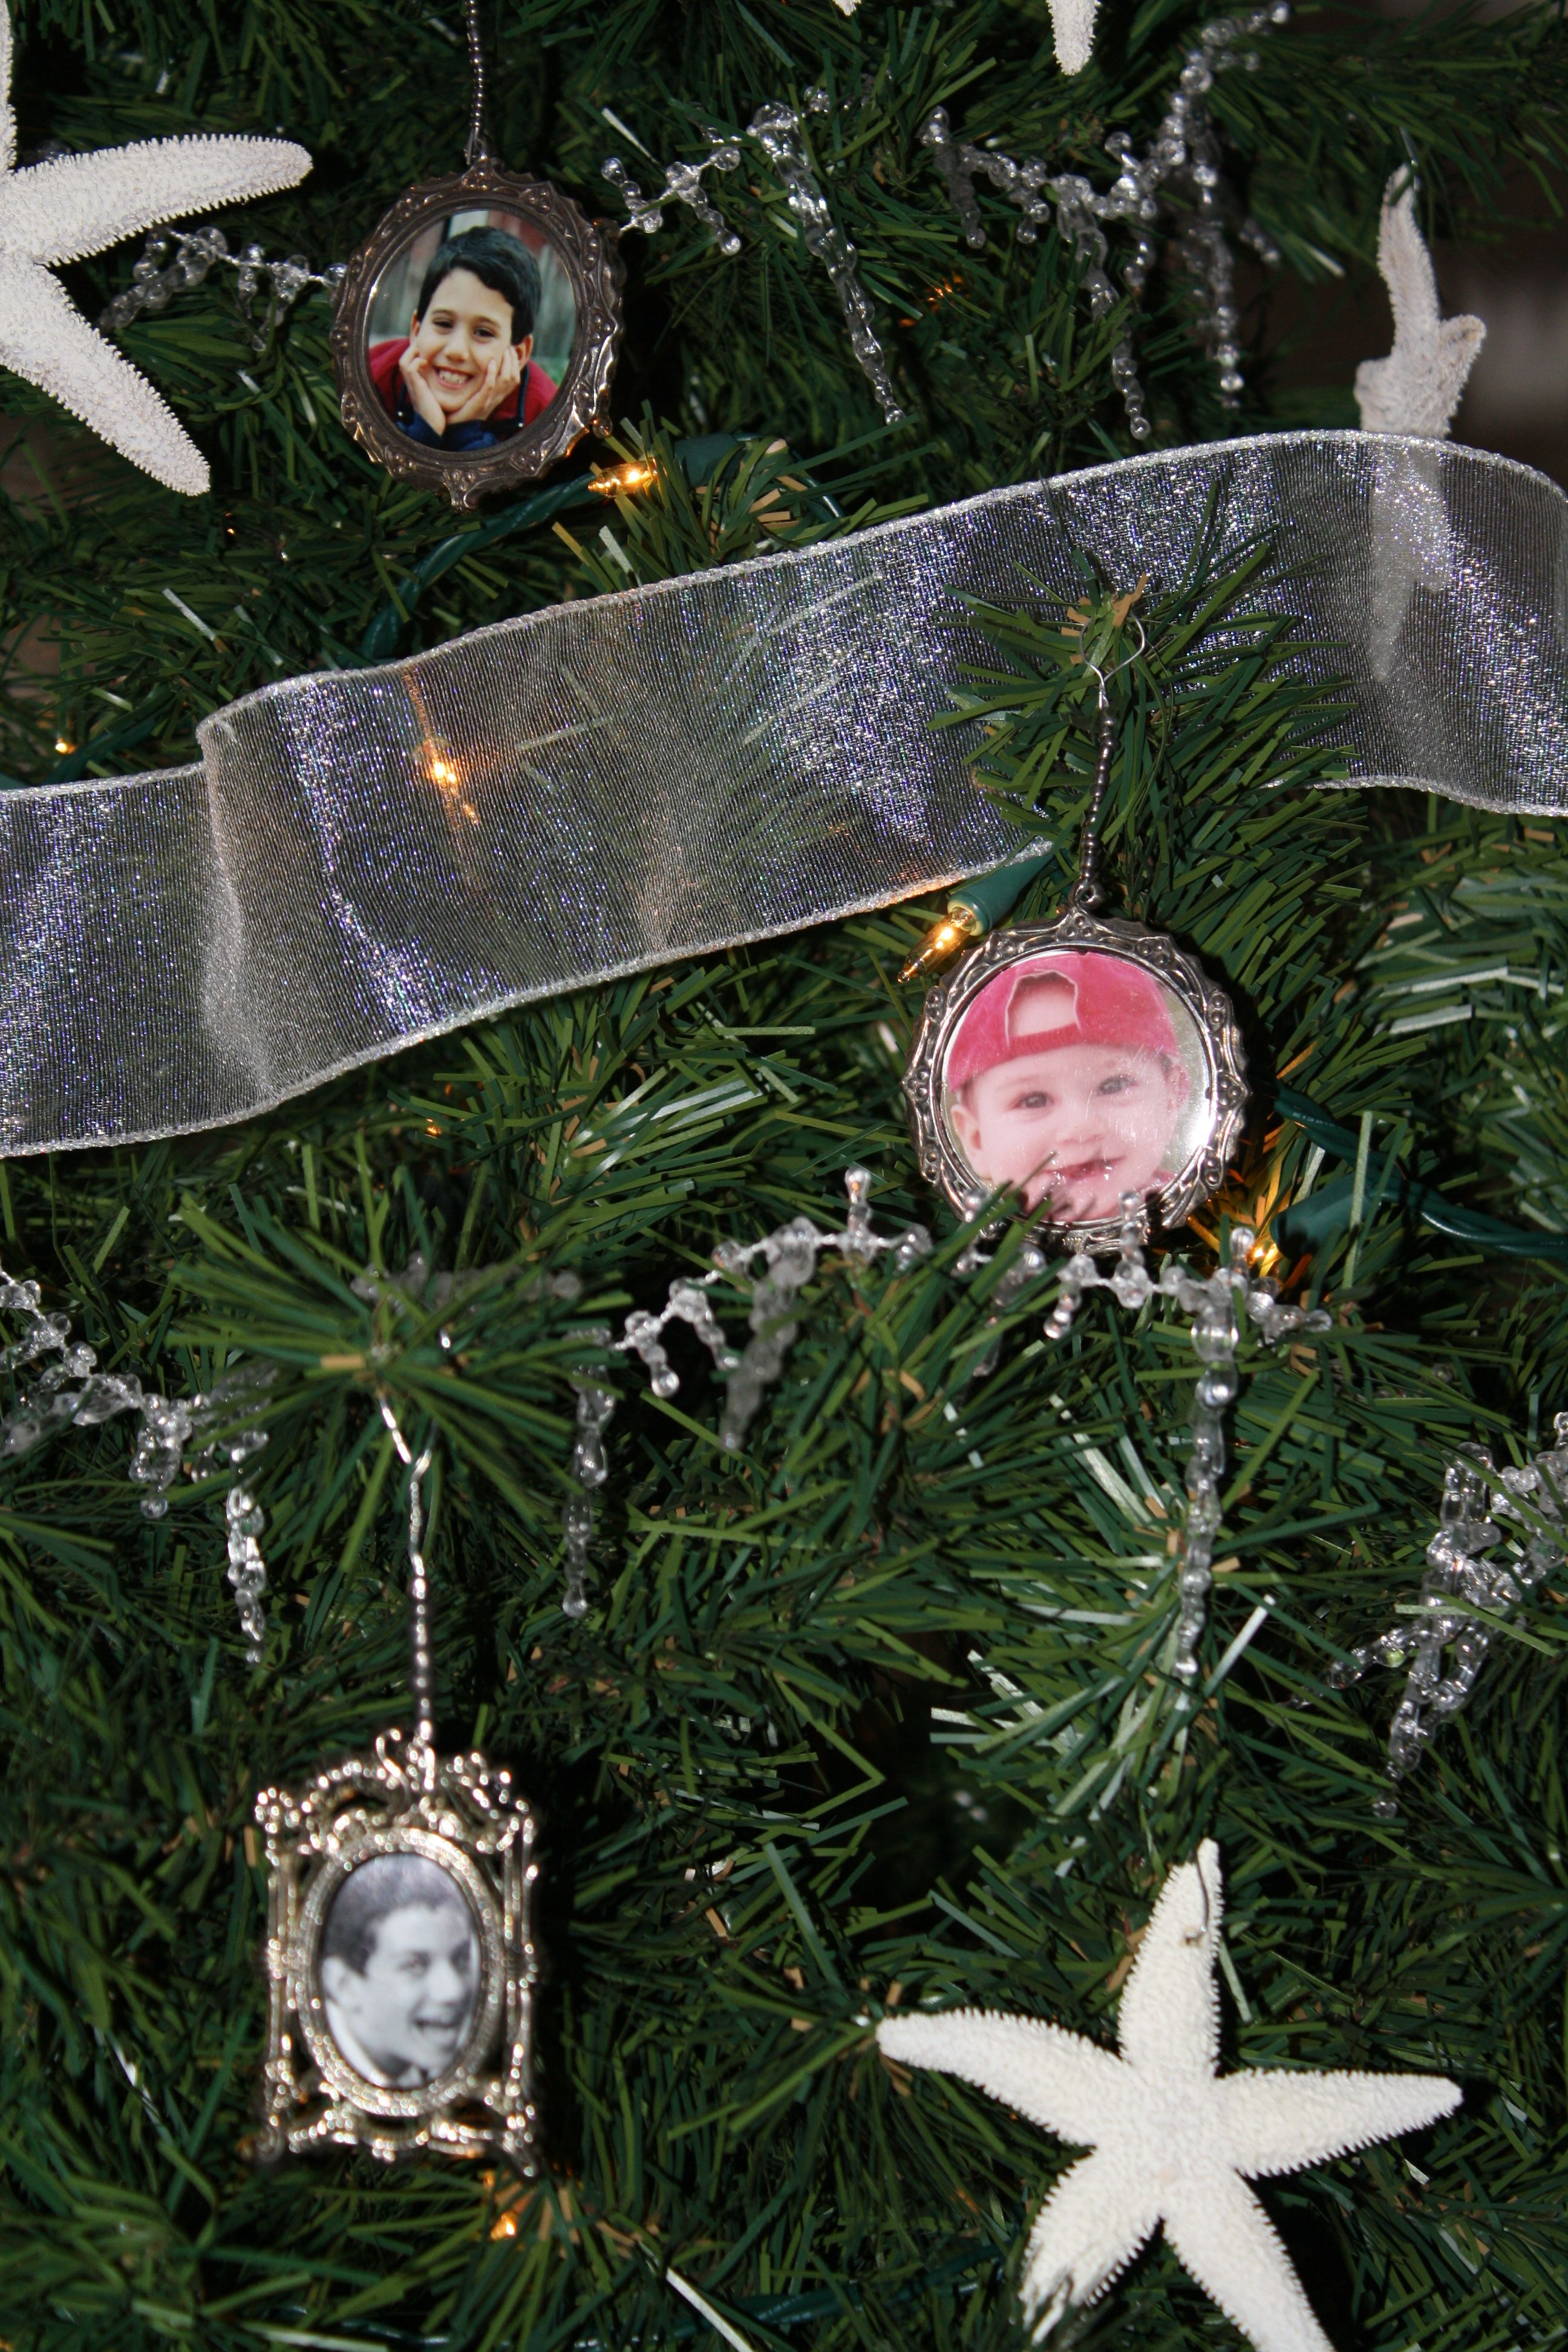 Christmas Tree Decorations, Using Favorite Photos Displaying In Silver Frames